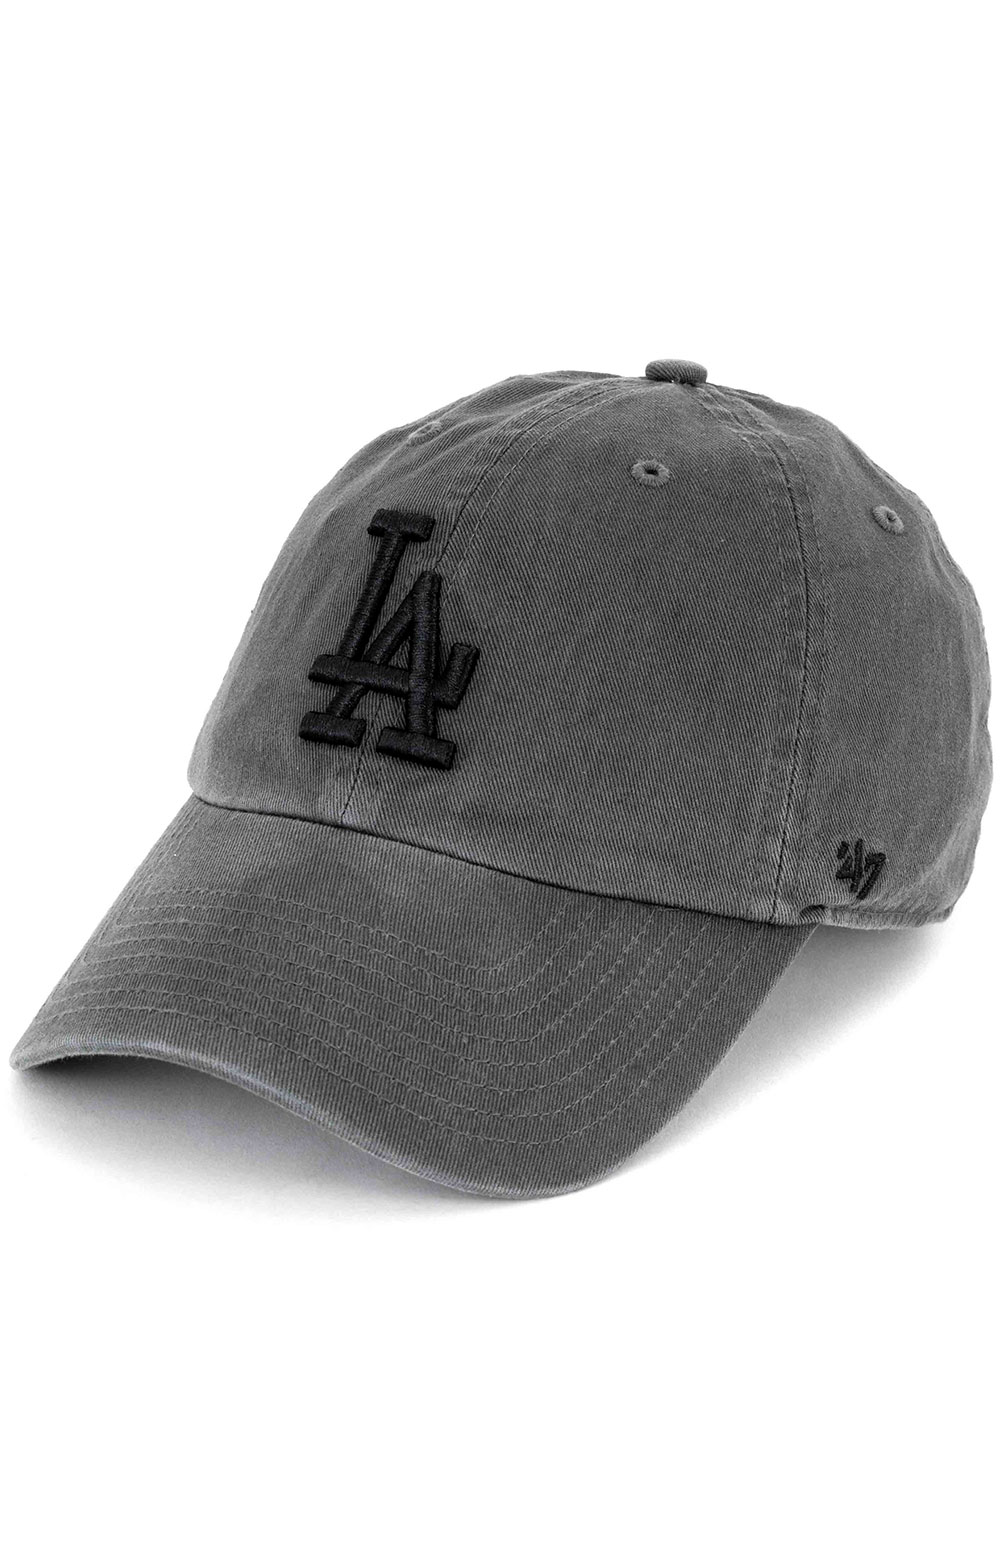 Los Angeles Dodgers Clean Up Cap - Charcoal